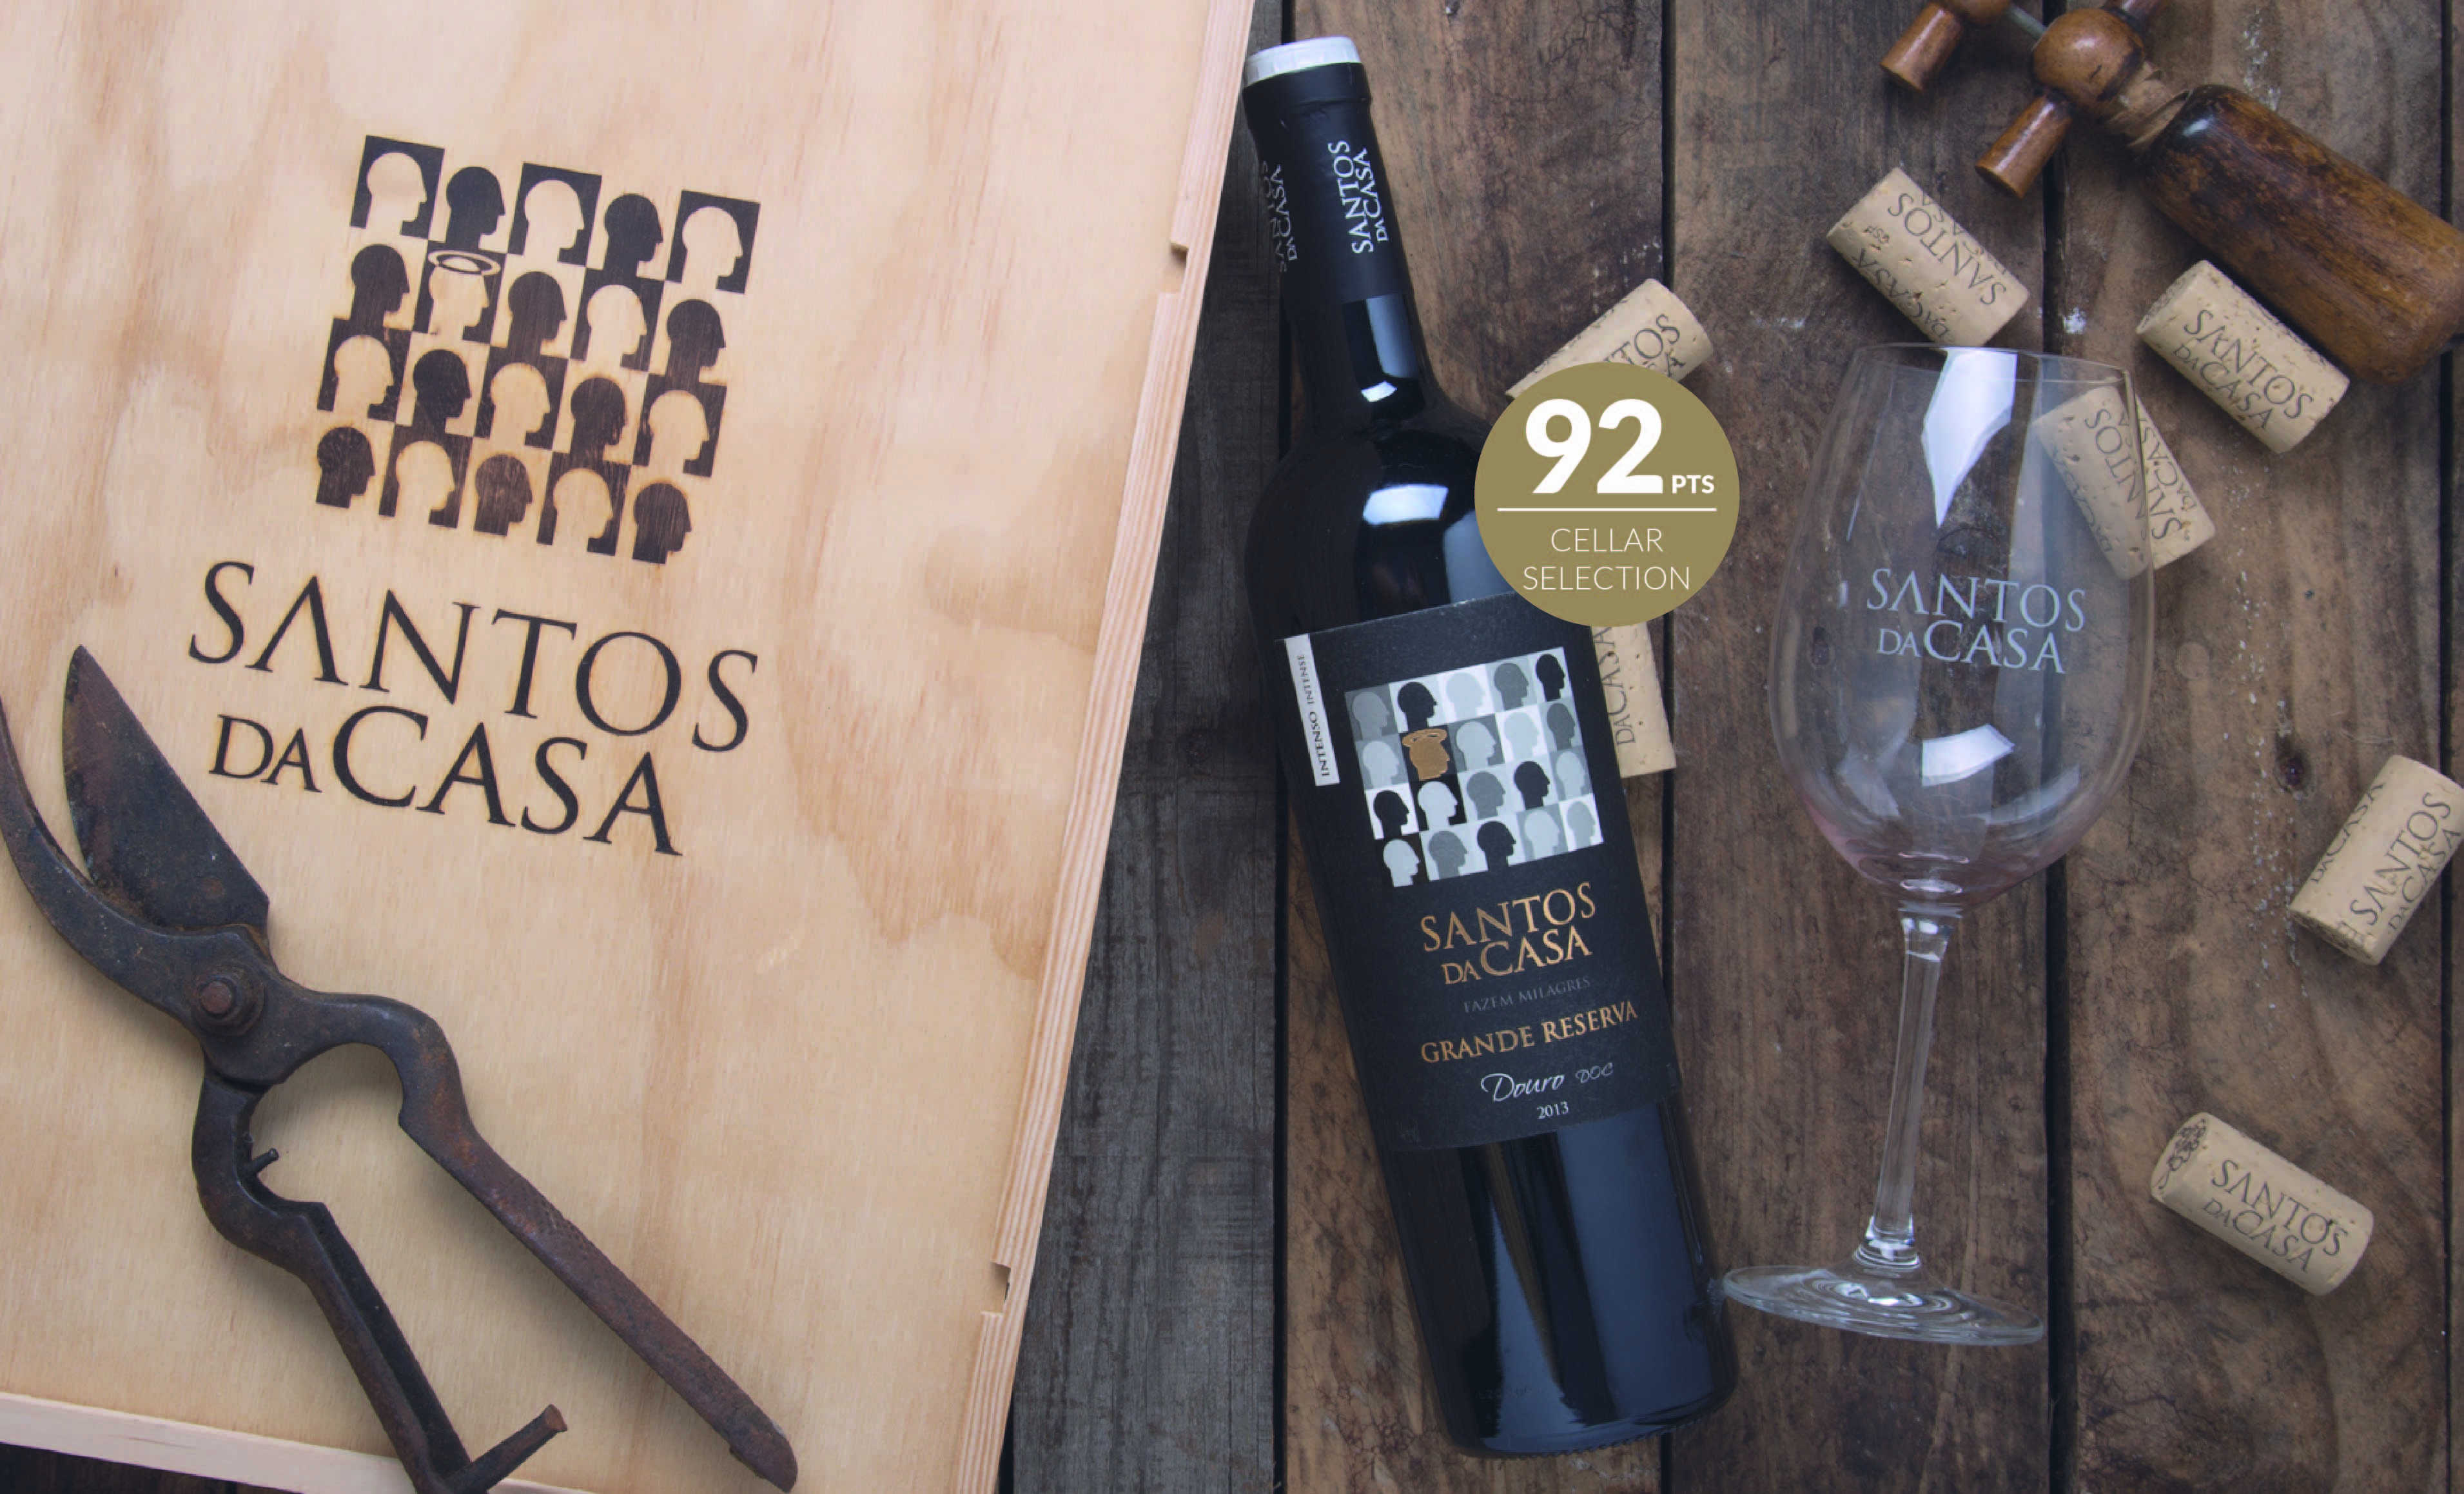 Santos da Casa Grande Reserva Douro distinguished in Wine Enthusiast